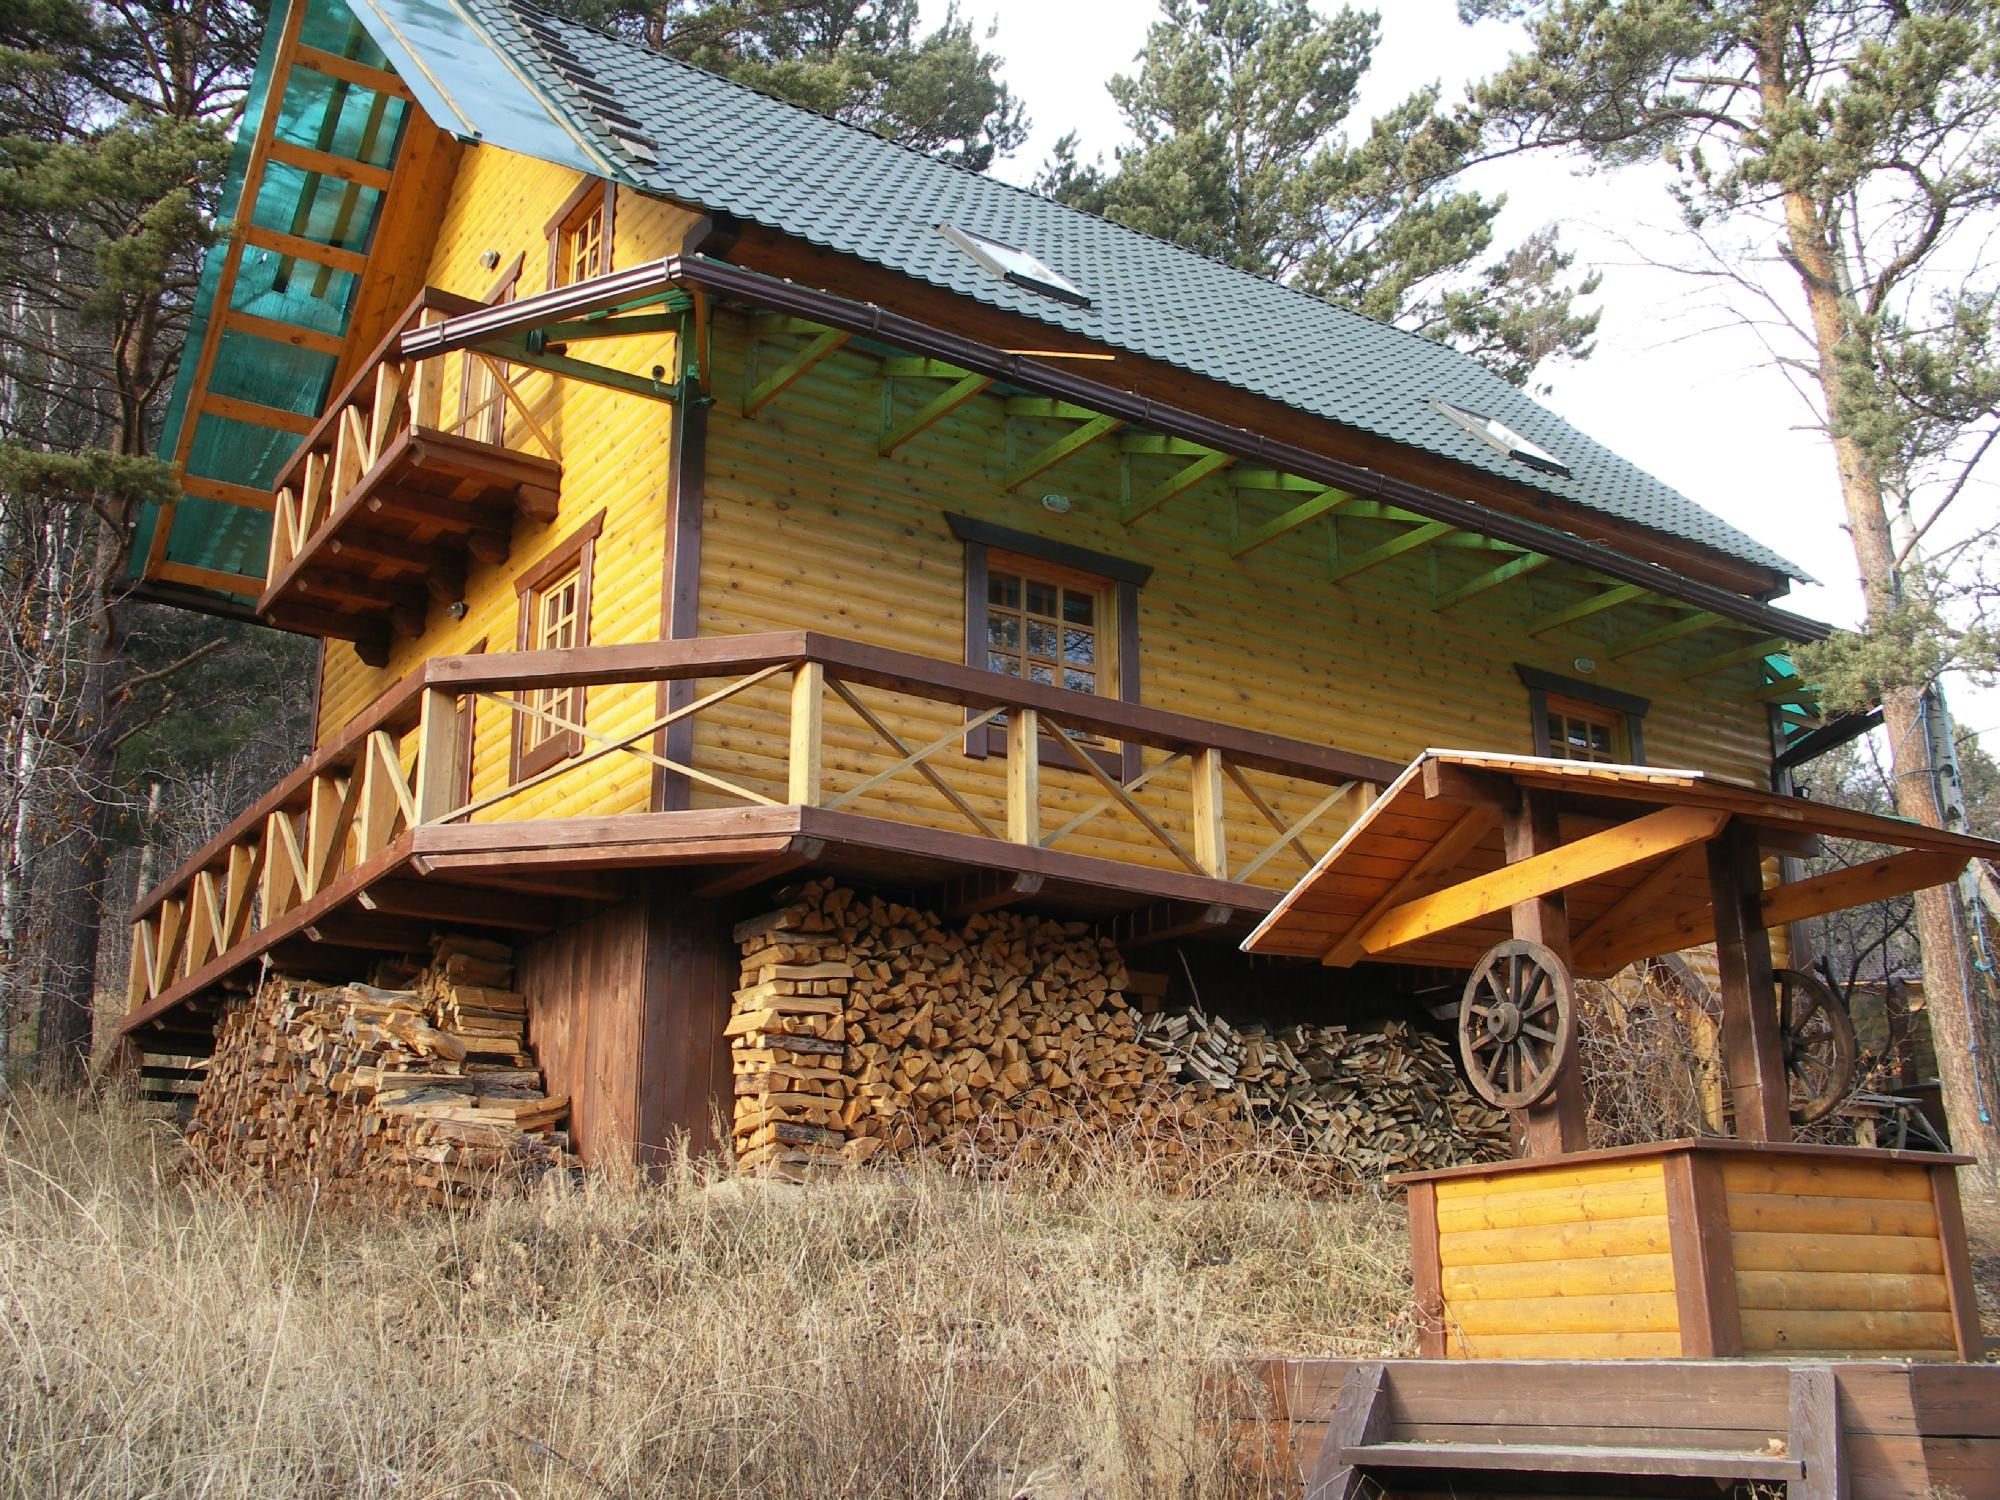 Baikaler Eco Hostel